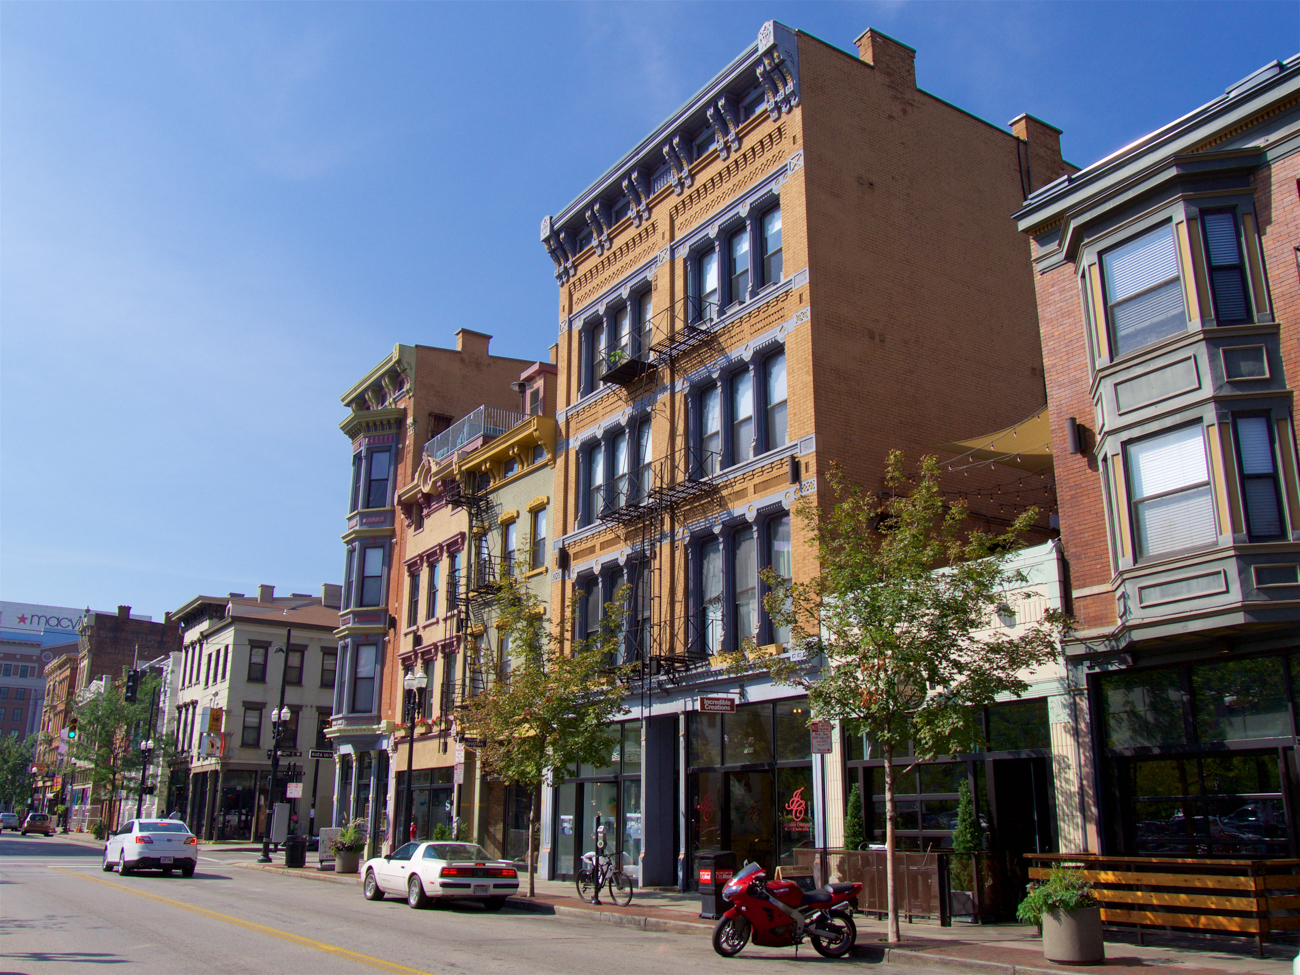 [AFTER] LOCATION: Corner of 12th and Vine Streets (Over-the-Rhine) / IMAGE: Travis Estell